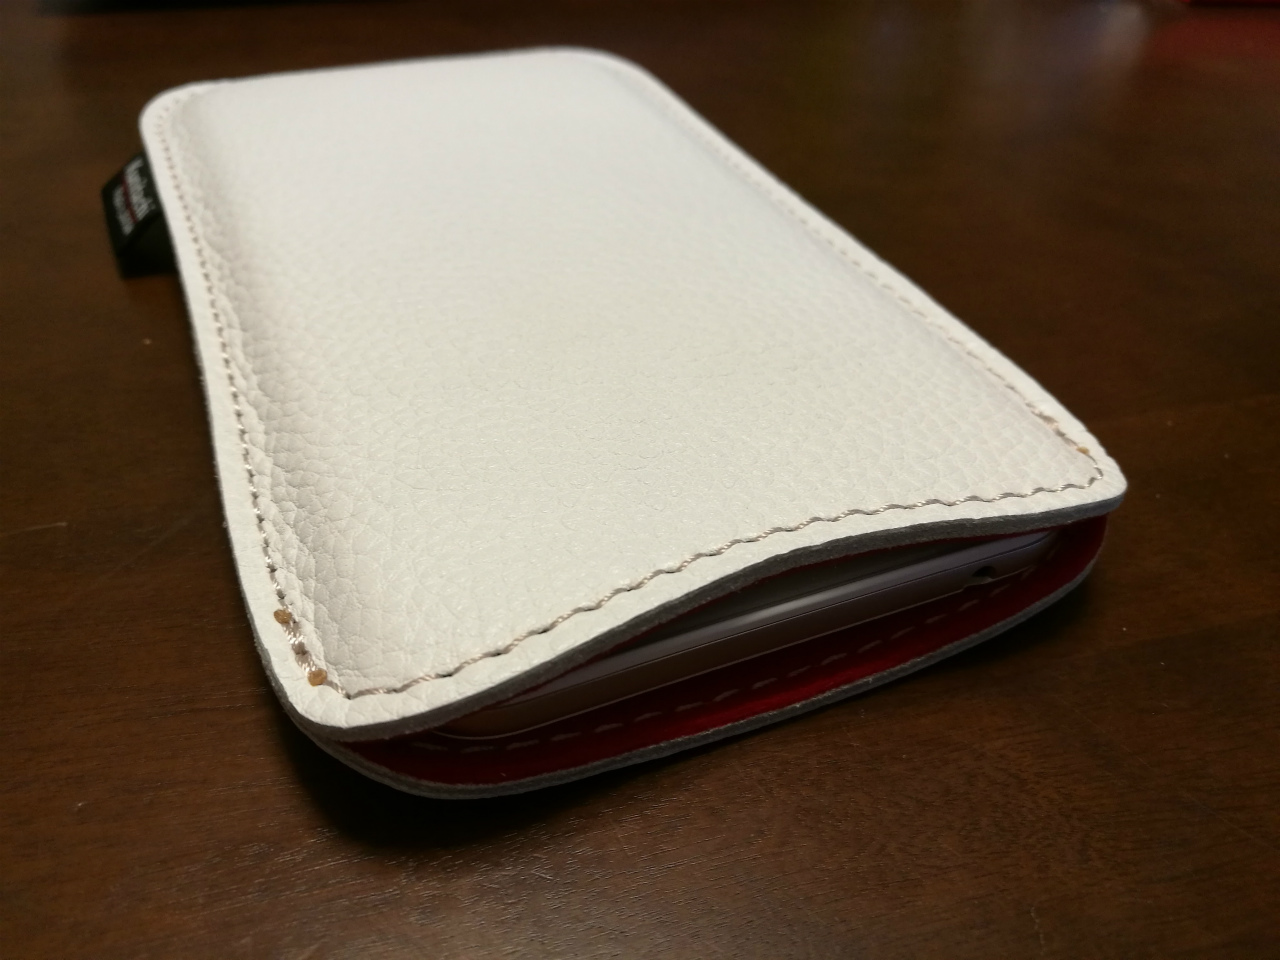 kunitachi-shrink-leather-sleeve-iphone6splus-21